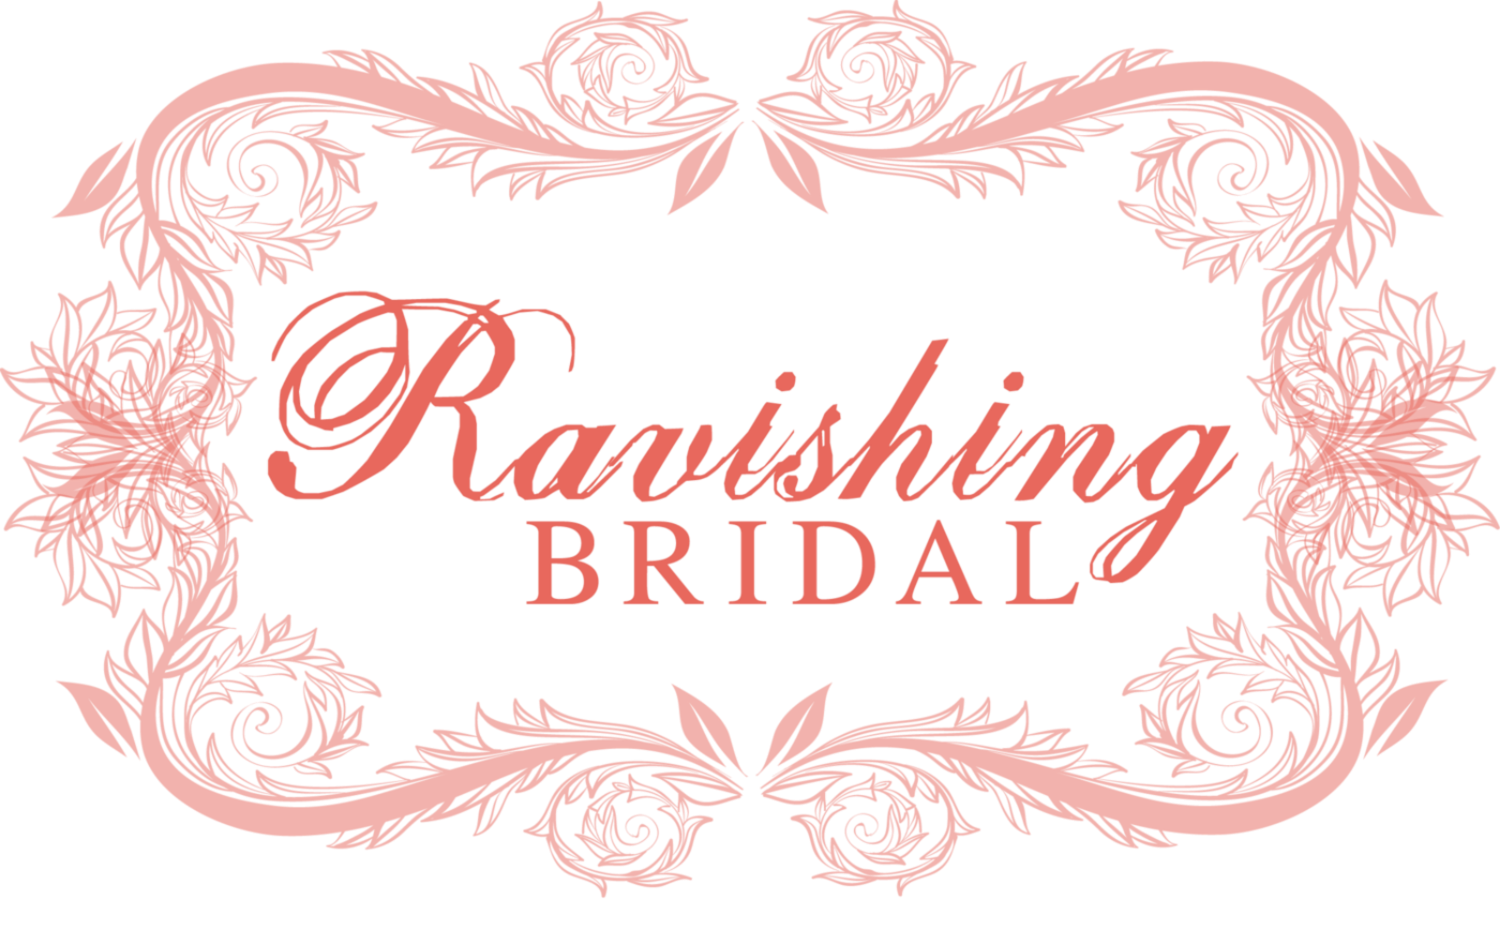 Ravishing Bridal